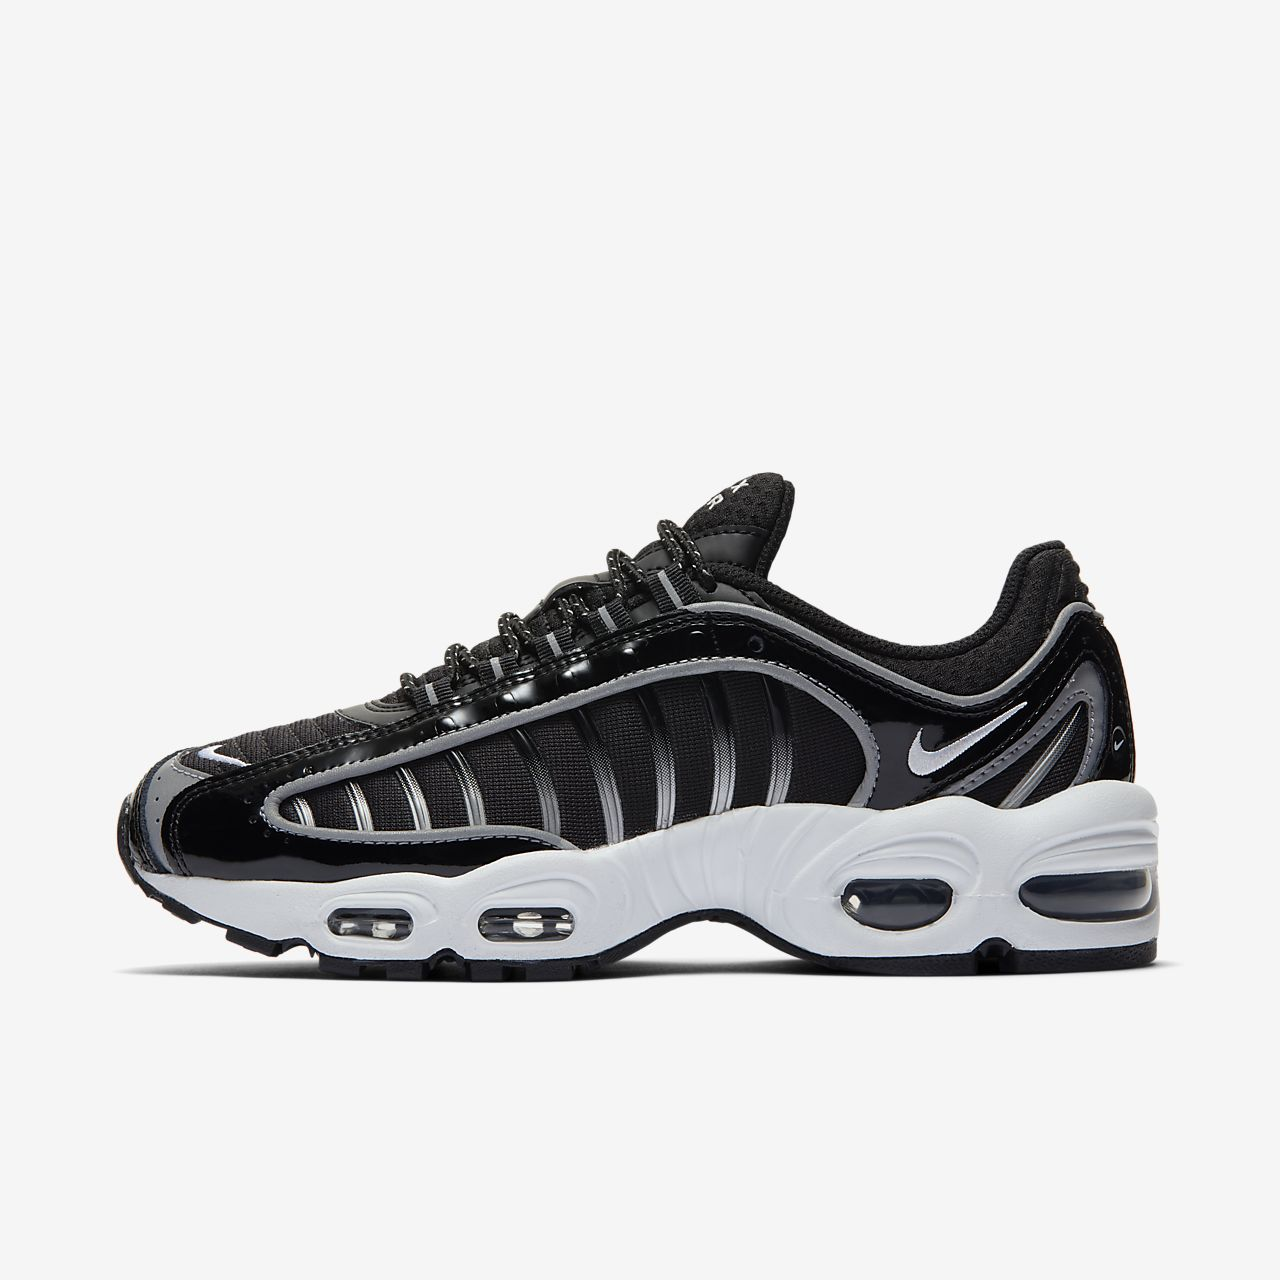 Nike Air Max Tailwind IV Women's Shoe